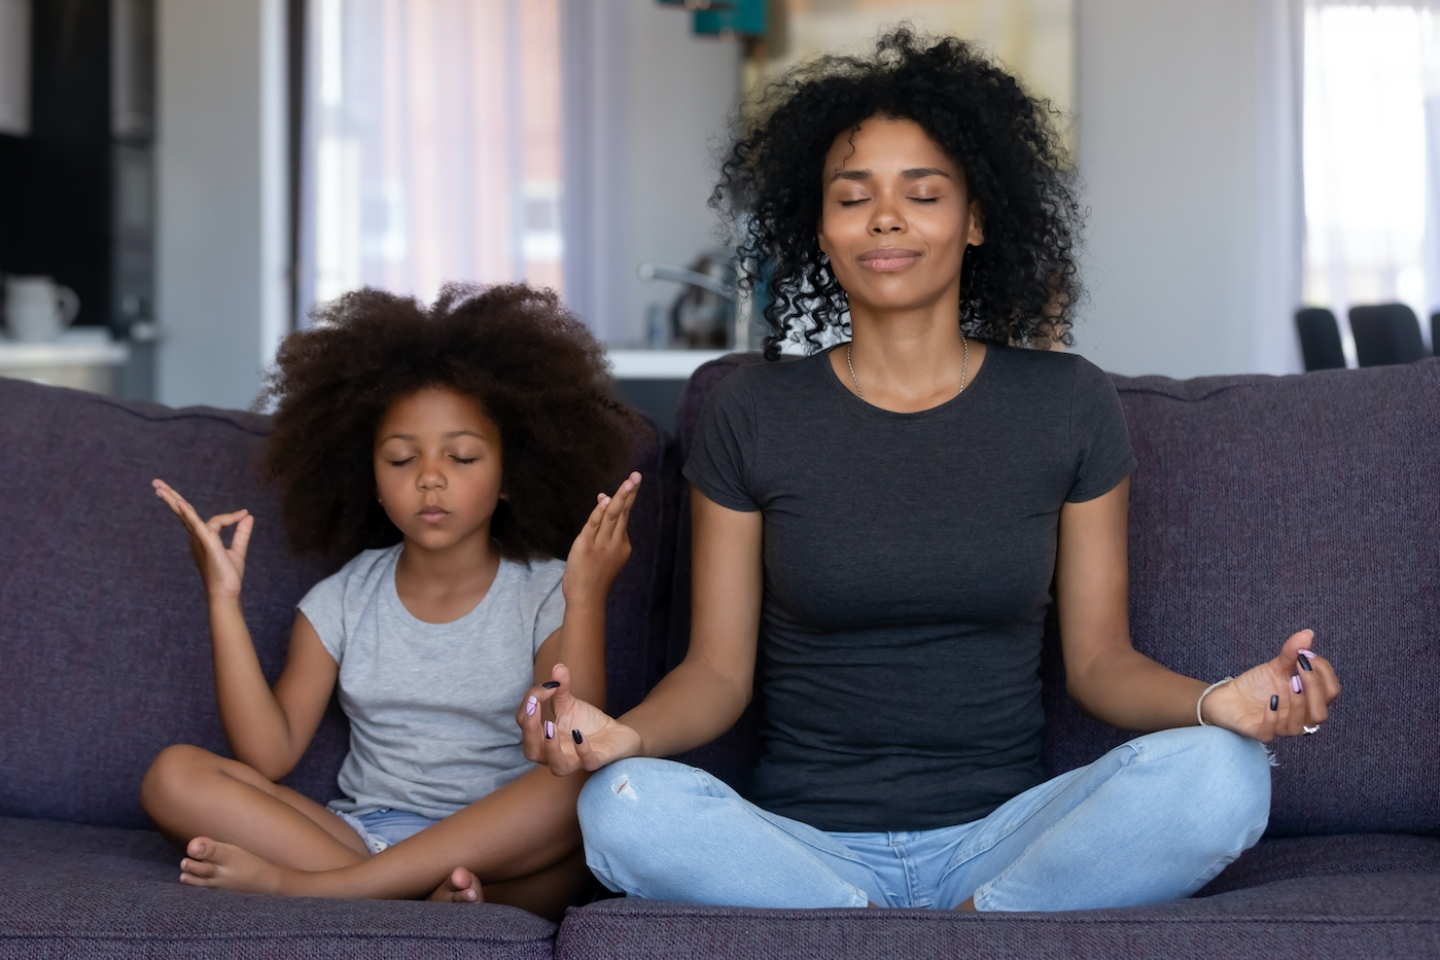 mom and daughter meditating on couch